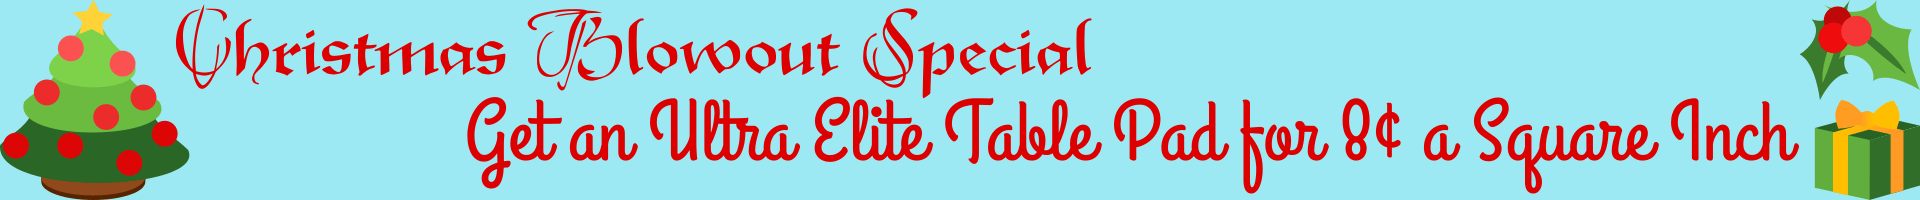 Christmas Special - Get An Ultra Elite Table Pad For 8 Cents A Square Inch